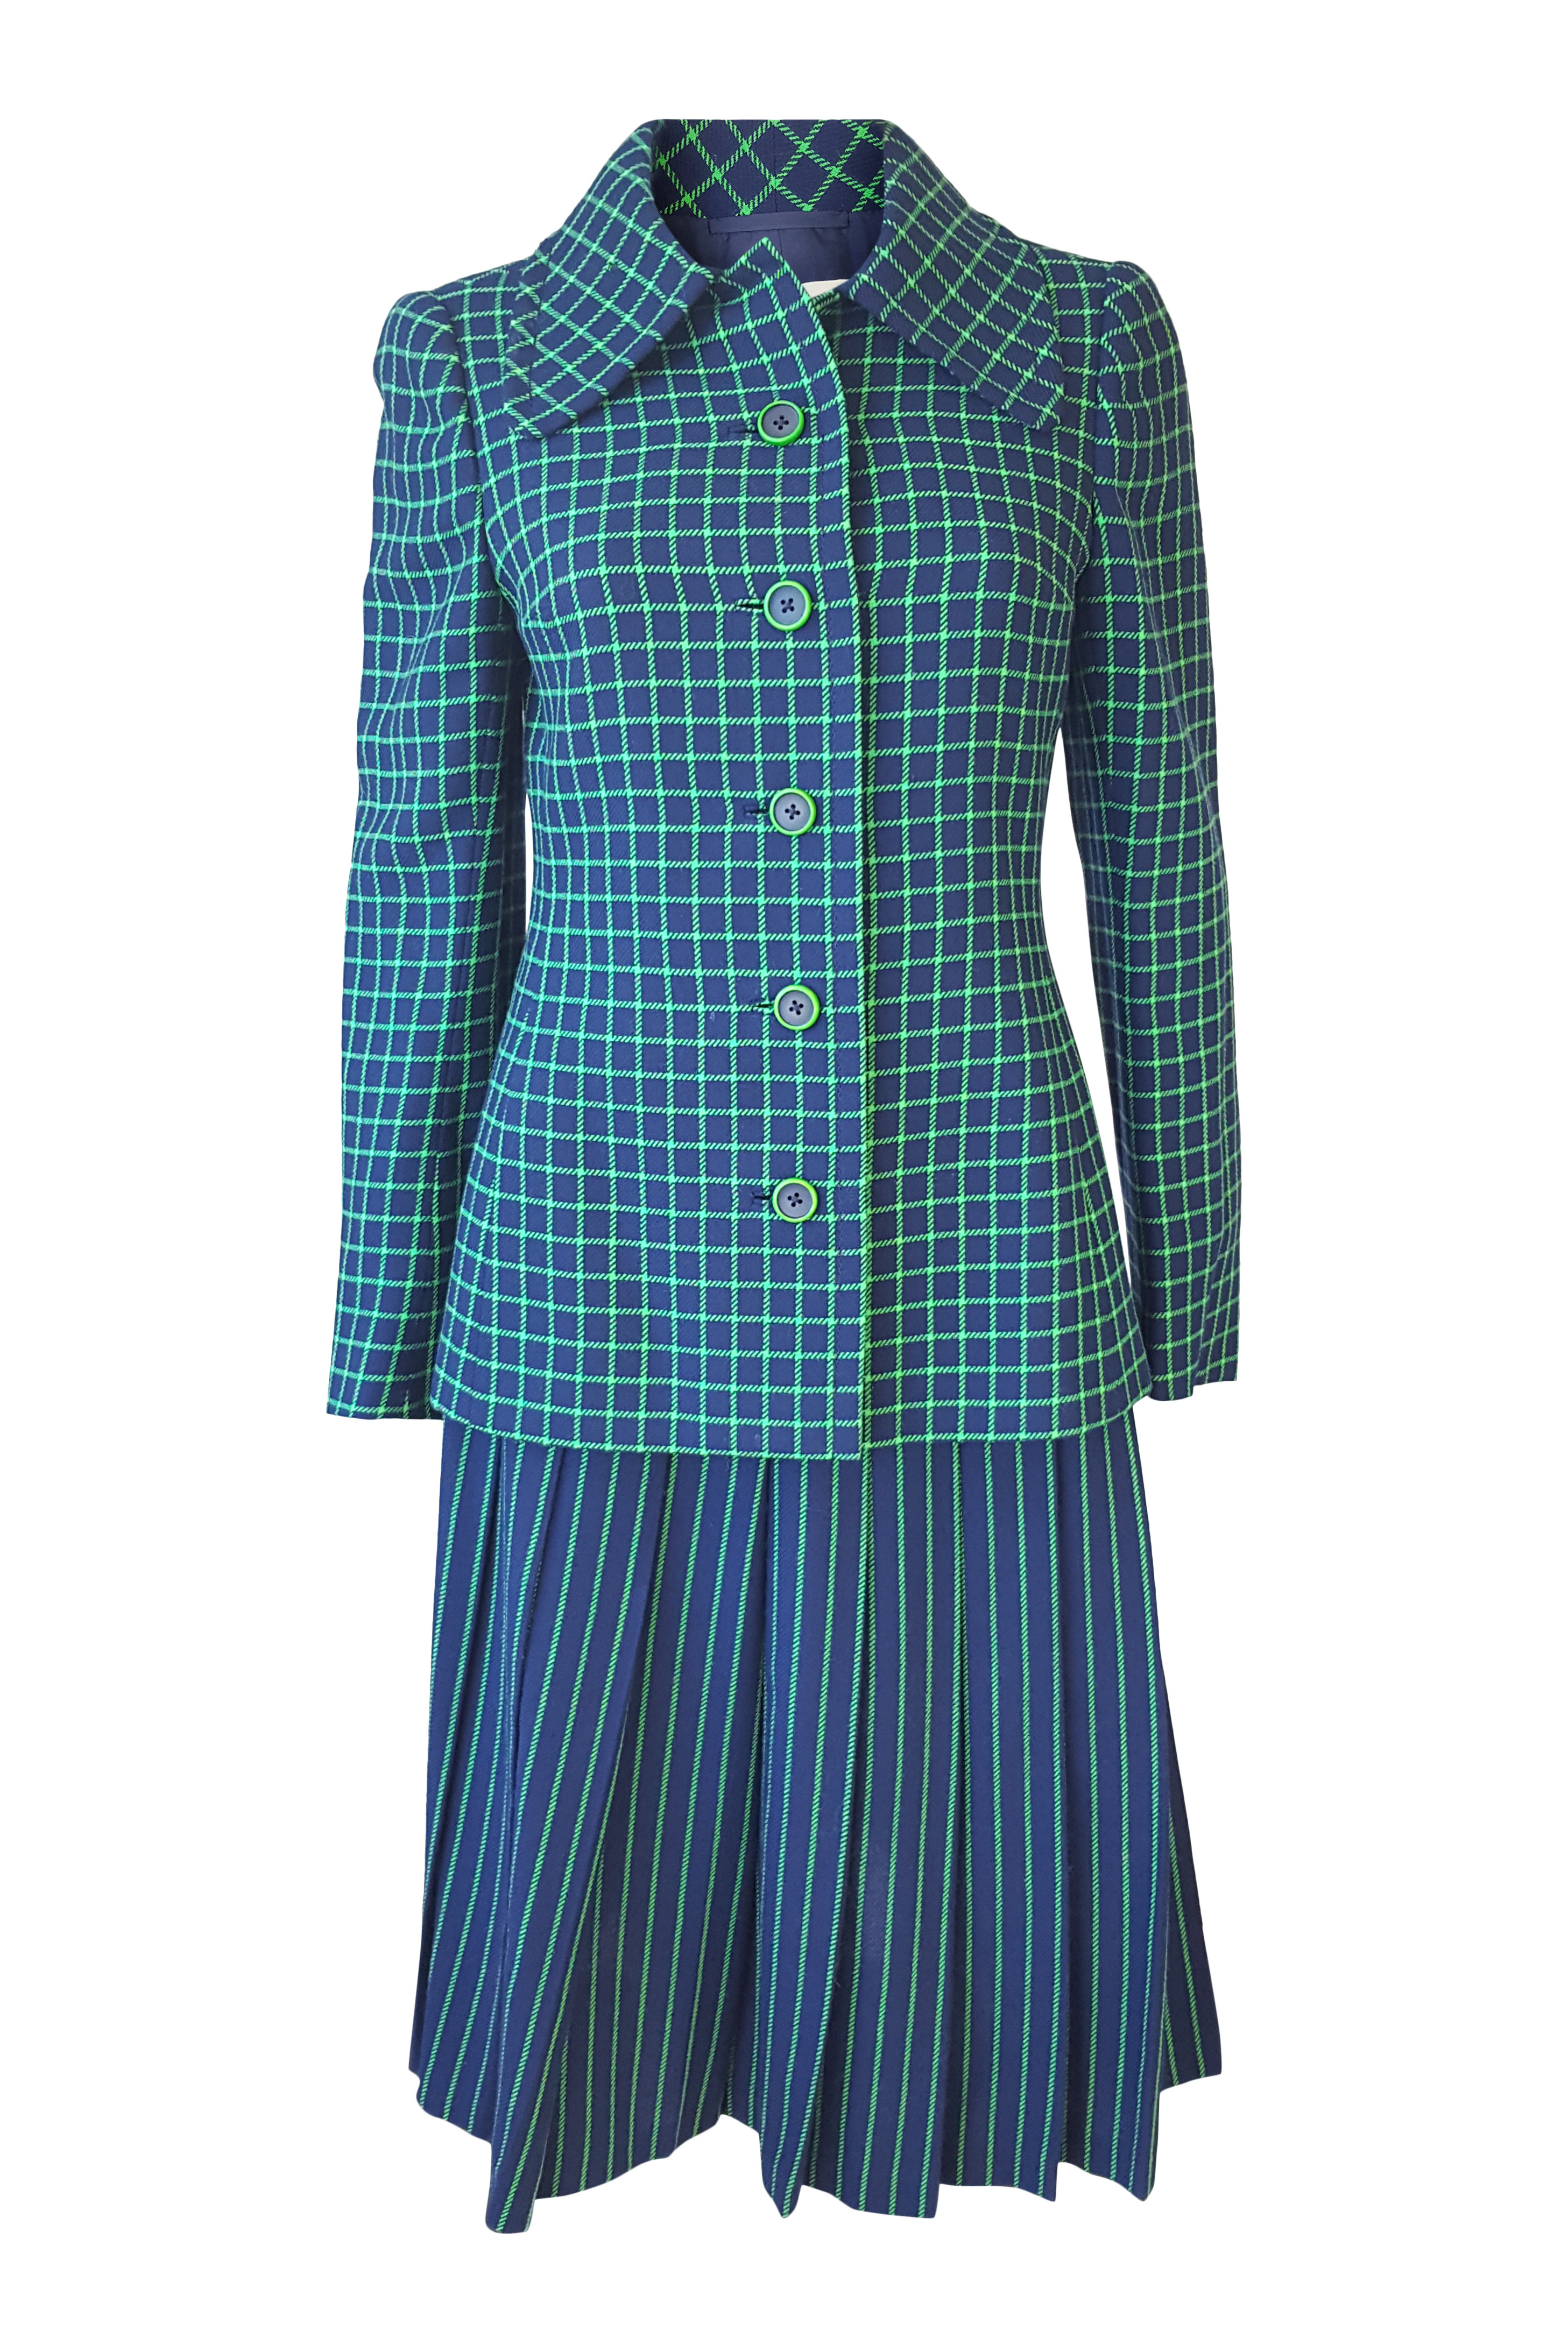 e505455fdd31 Sentinel CHRISTIAN DIOR London Vintage Numbered Green Blue Wool Skirt Suit  (S M)